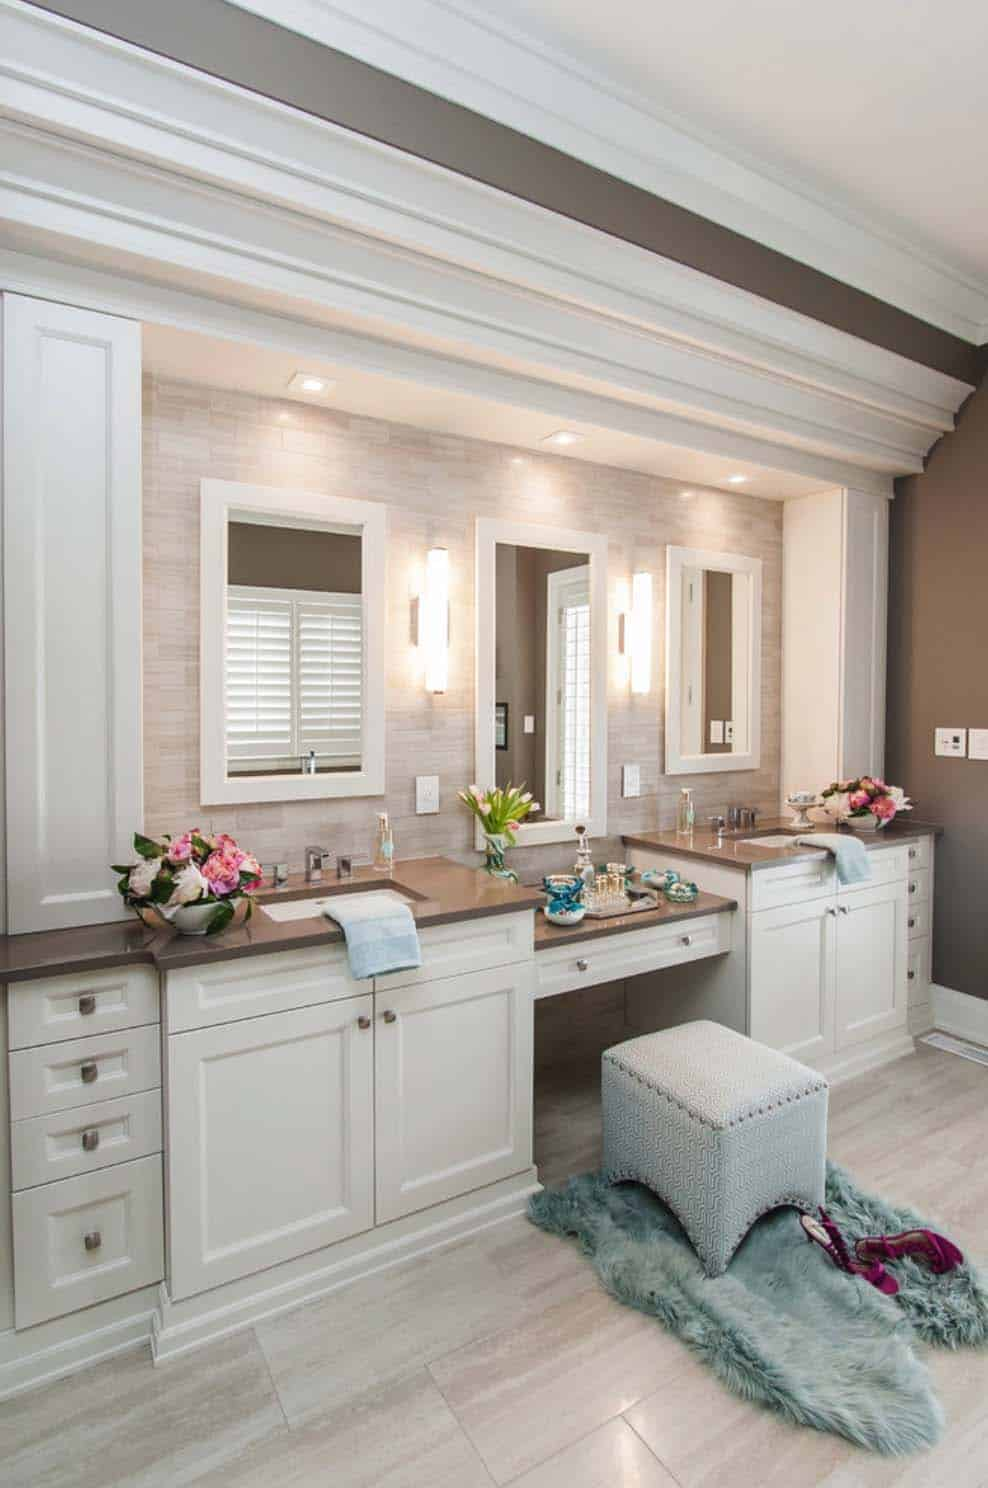 53 most fabulous traditional style bathroom designs ever Bathrooms pictures